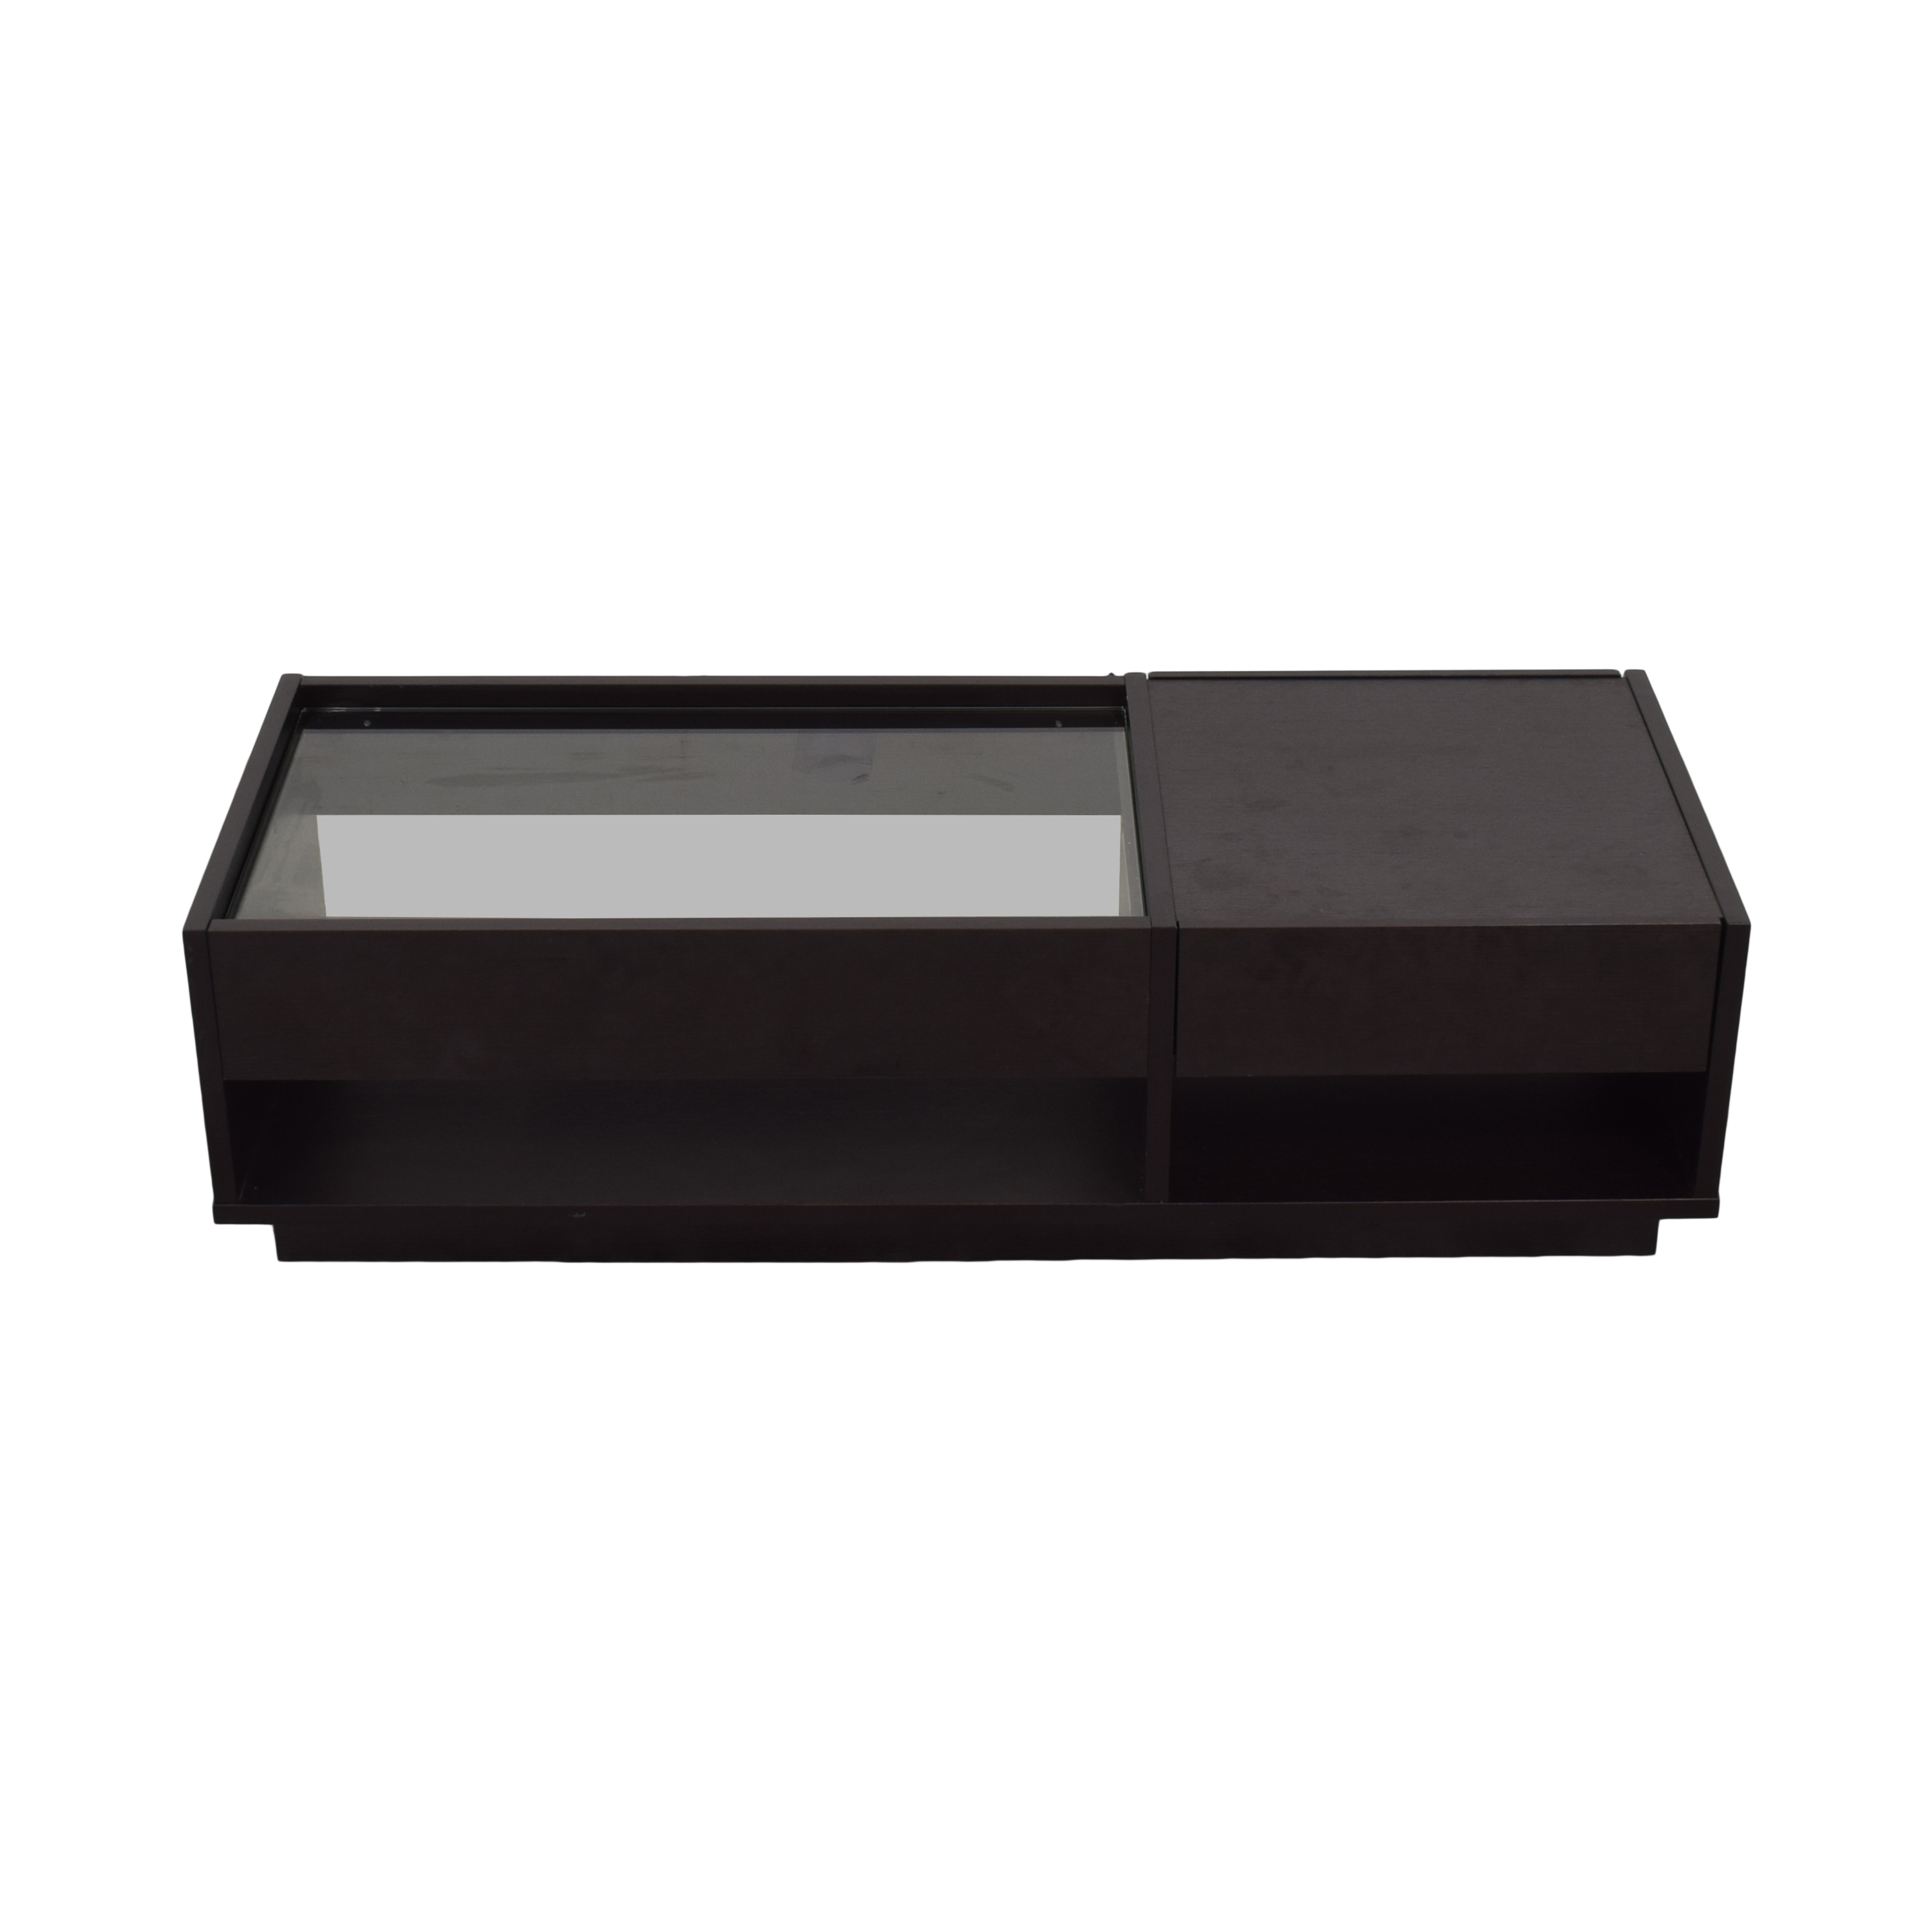 buy ioHOMES Karl Modern Coffee Table with Storage ioHOMES Tables